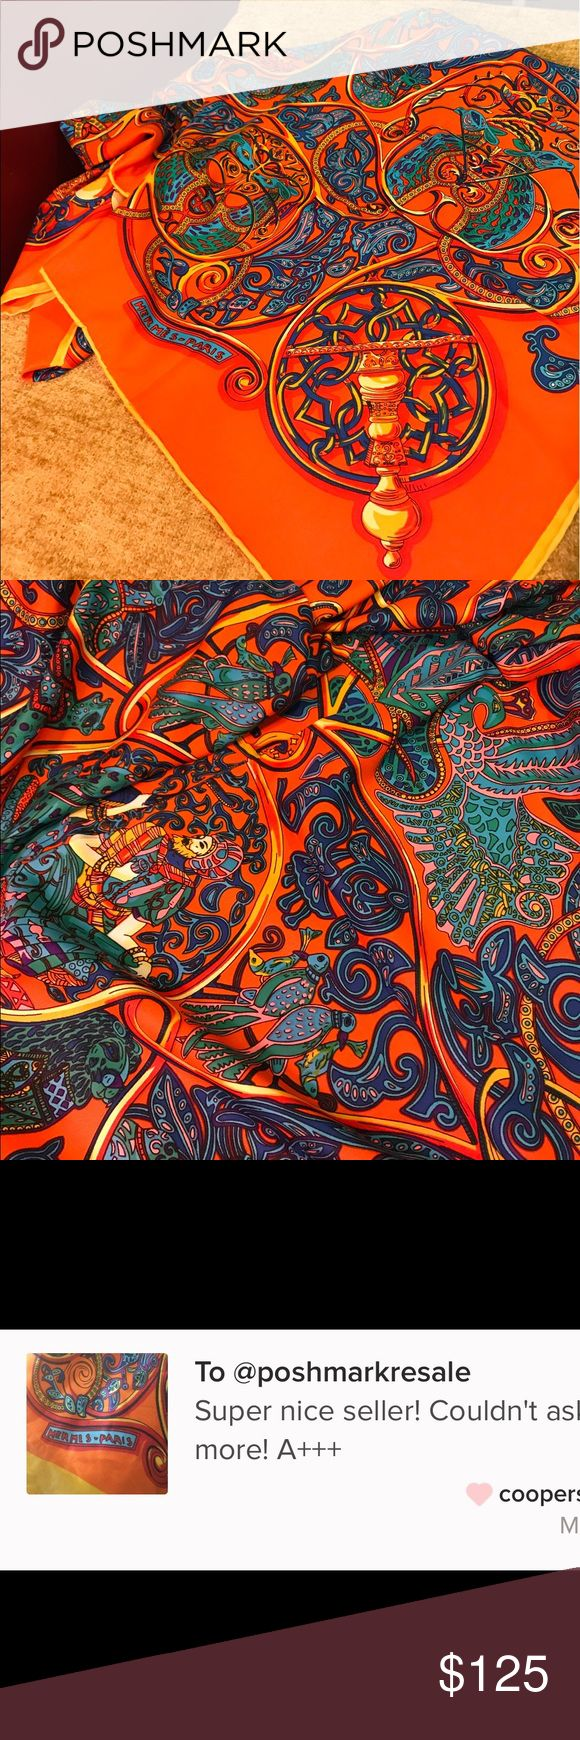 """Hermes print silk scarf 100% silk square  @50""""x50"""" You tube scarf folding ... halter top vest darling shawl neck coat hand bag .  No brand listed as Hermes for exposure Hermes Accessories Scarves & Wraps"""